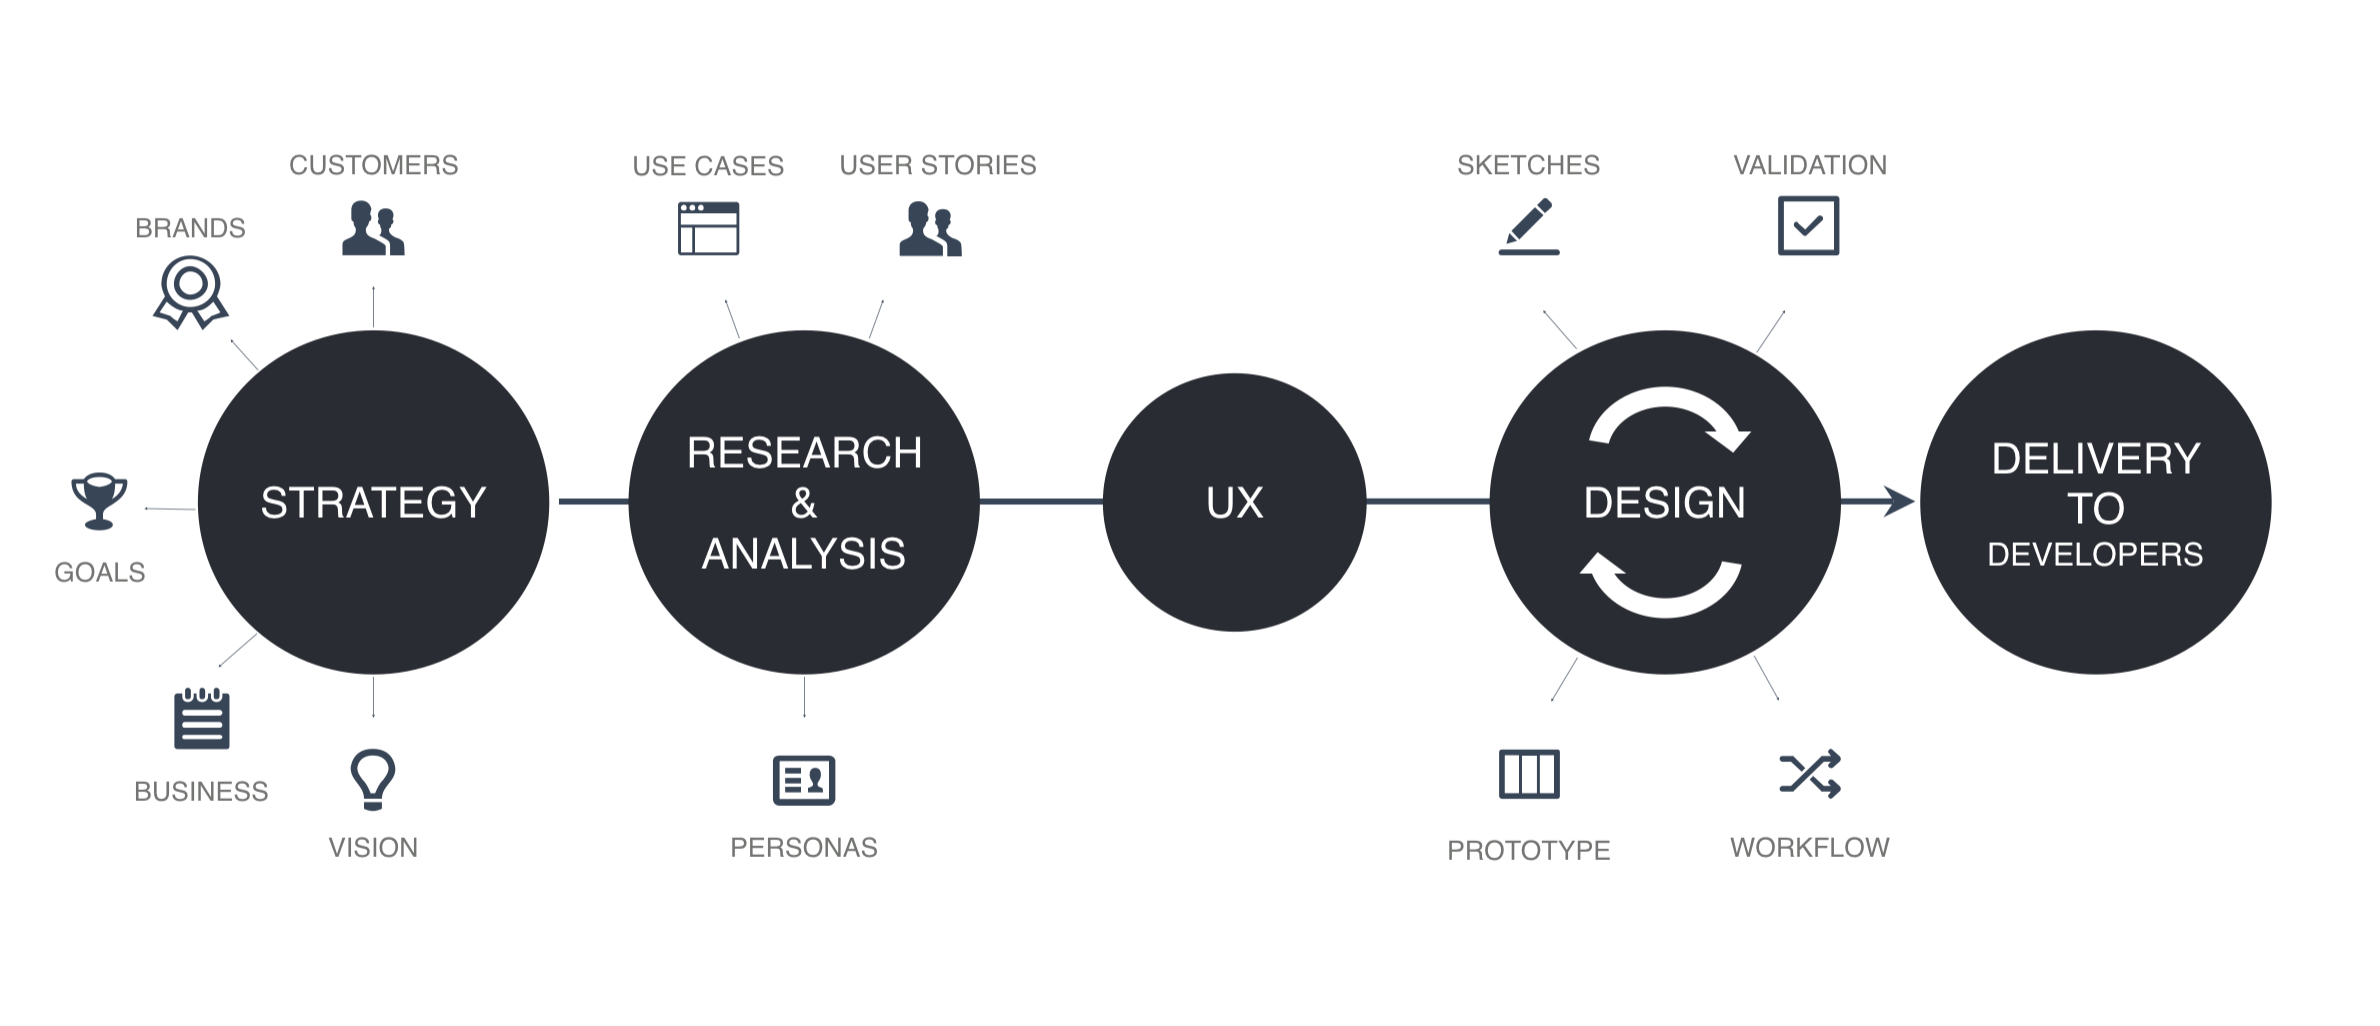 How And Why I Decided To Pursue A Career As A Ux Designer By Mingda Prototypr